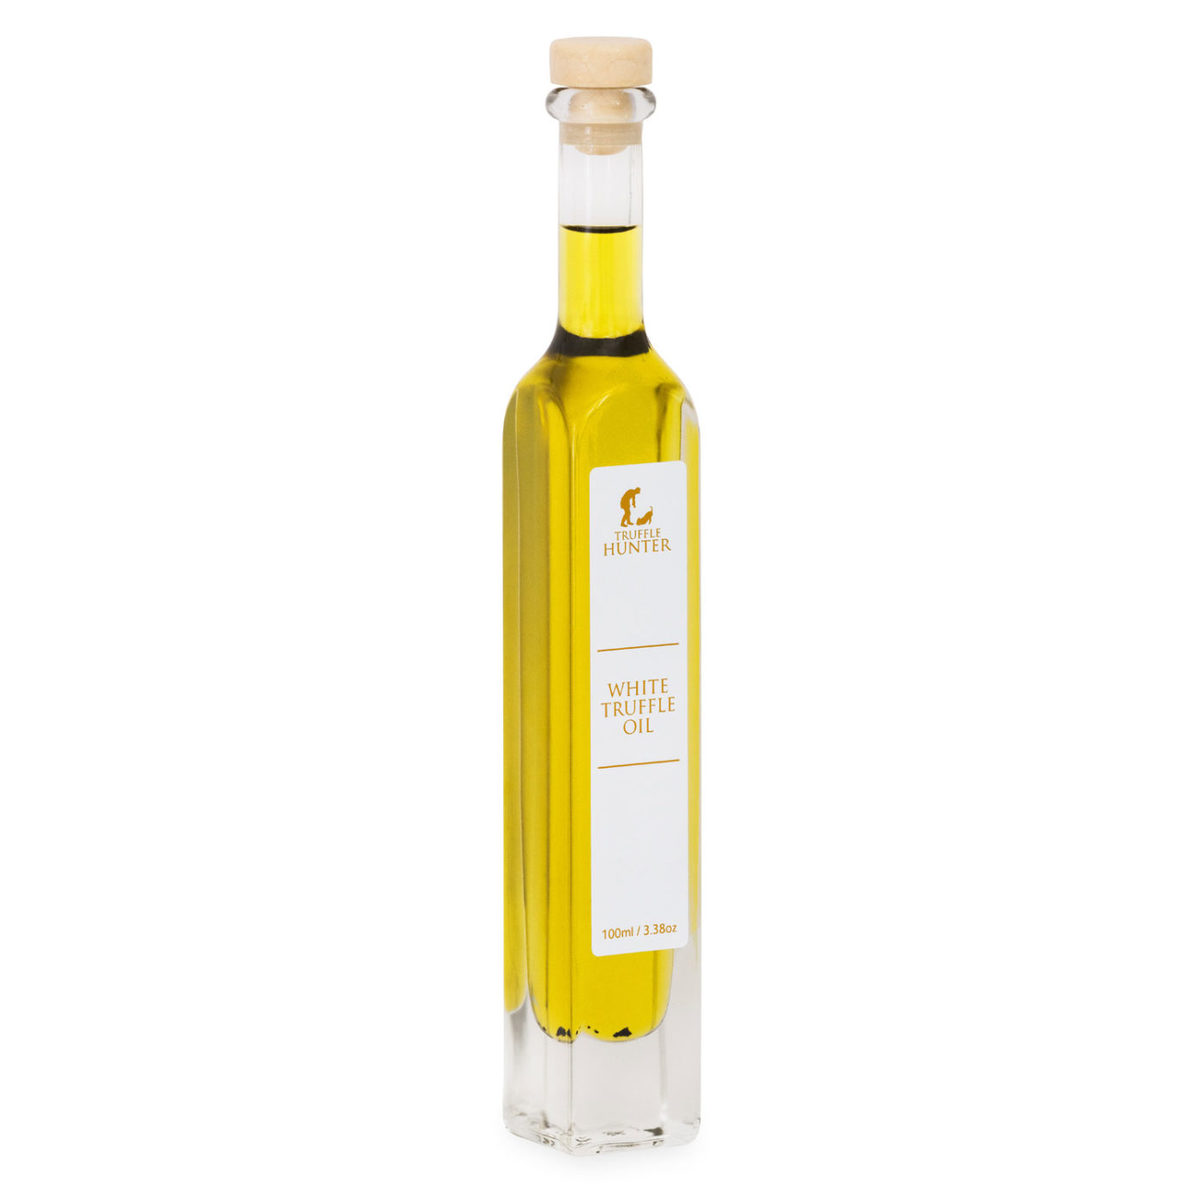 White Truffle Oil 100ml (Double-concentrated)